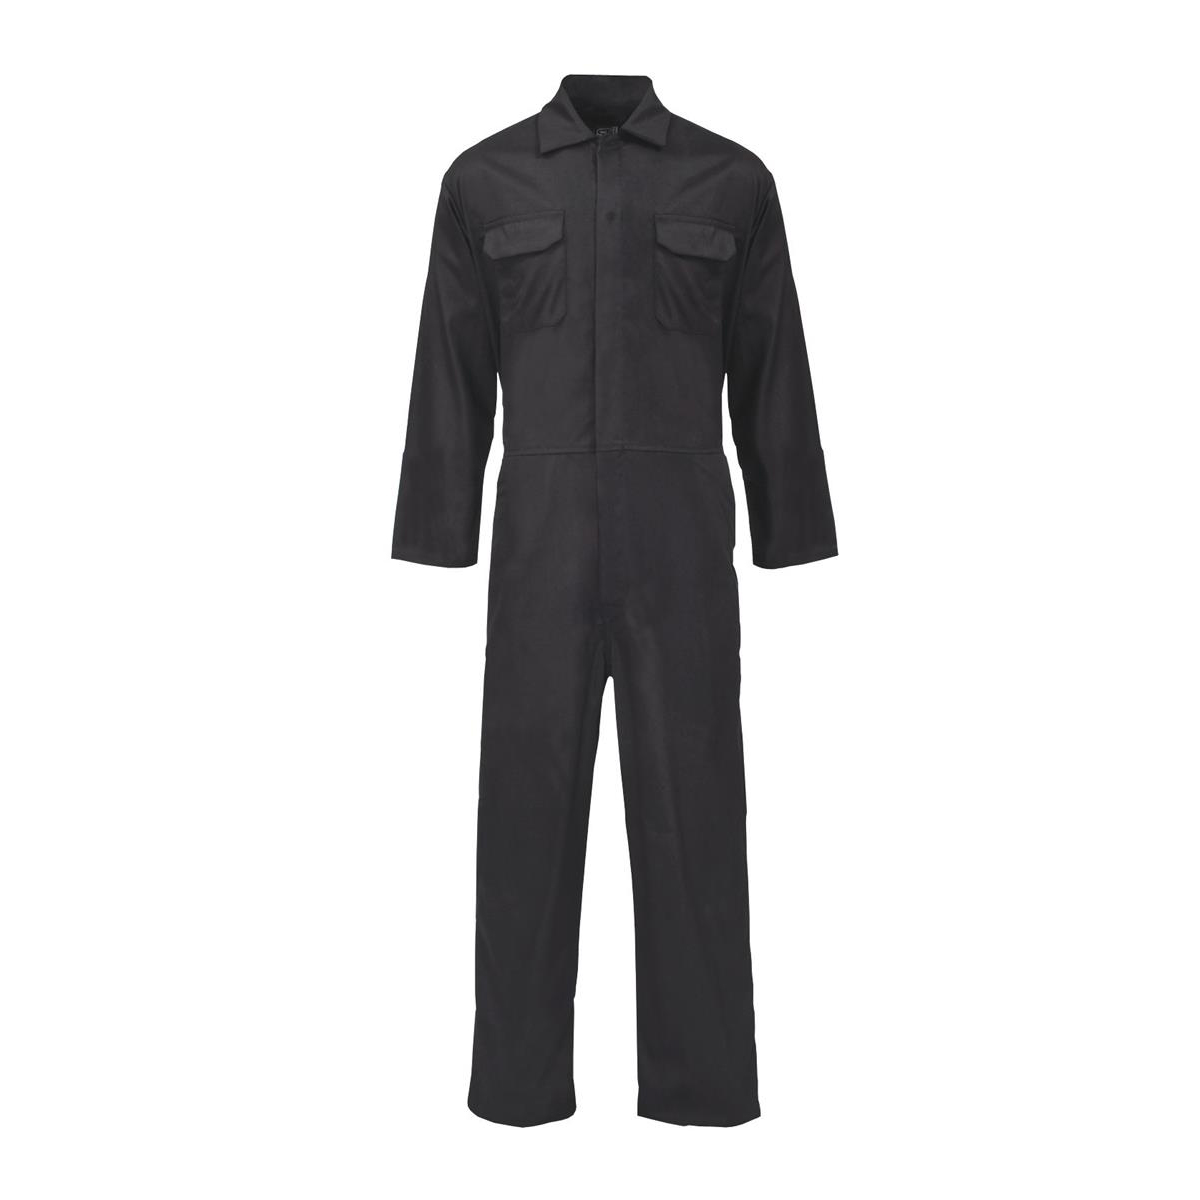 Coveralls / Overalls Coverall Basic with Popper Front Opening Polycotton Medium Black Ref RPCBSBL40 *Approx 3 Day Leadtime*